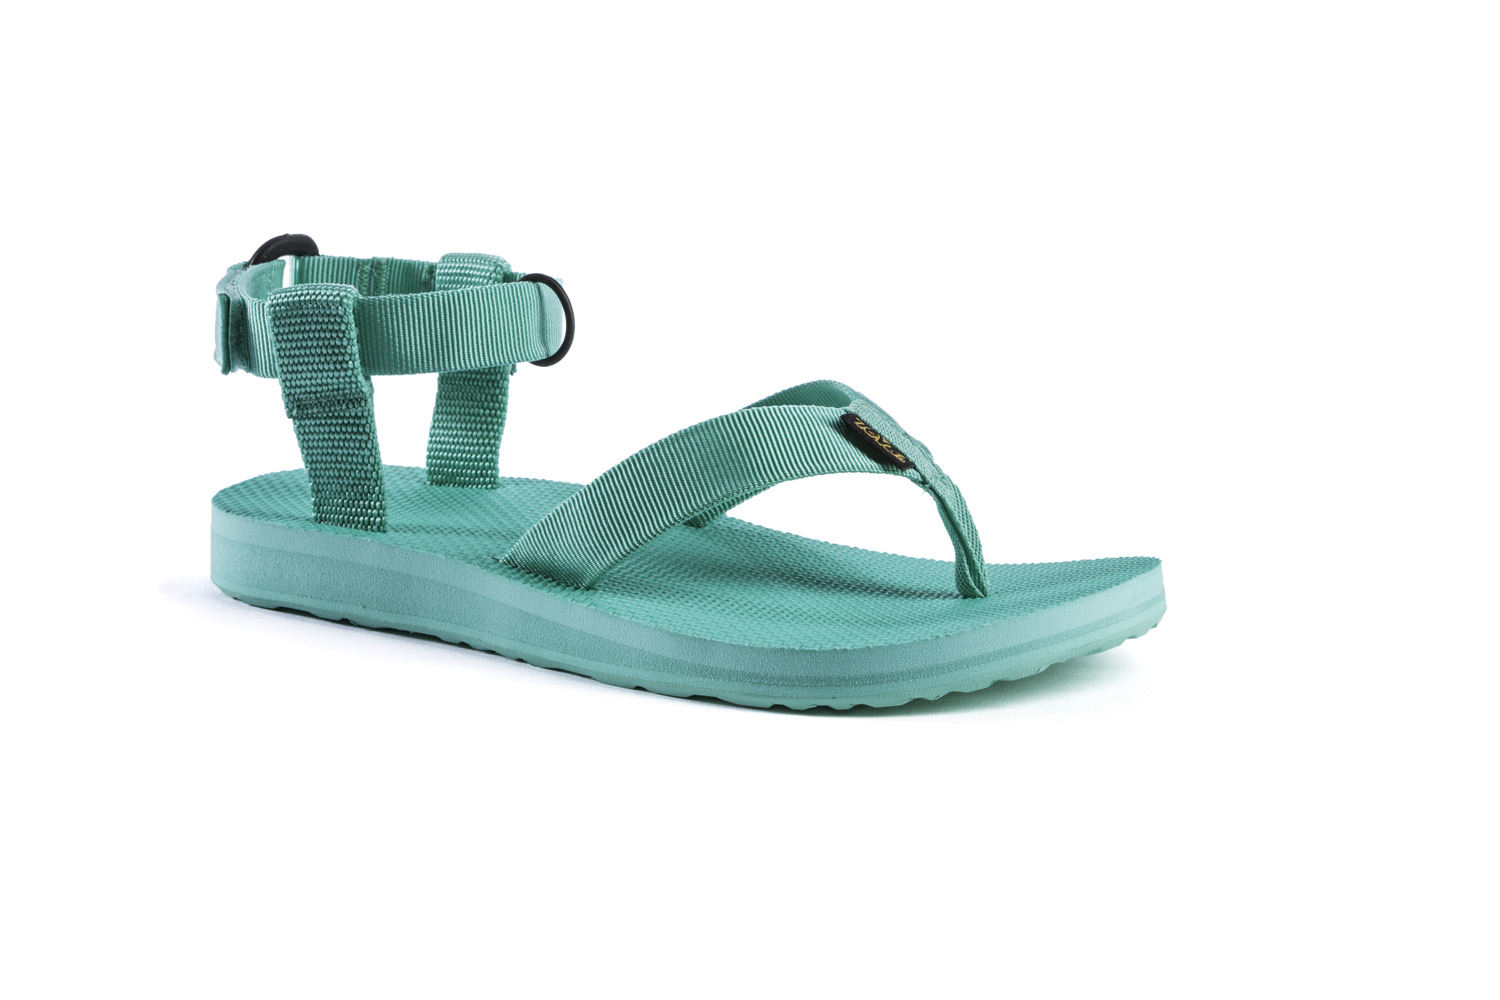 Teva Original Sandals in Turquoise, £30 (available at John Lewis)